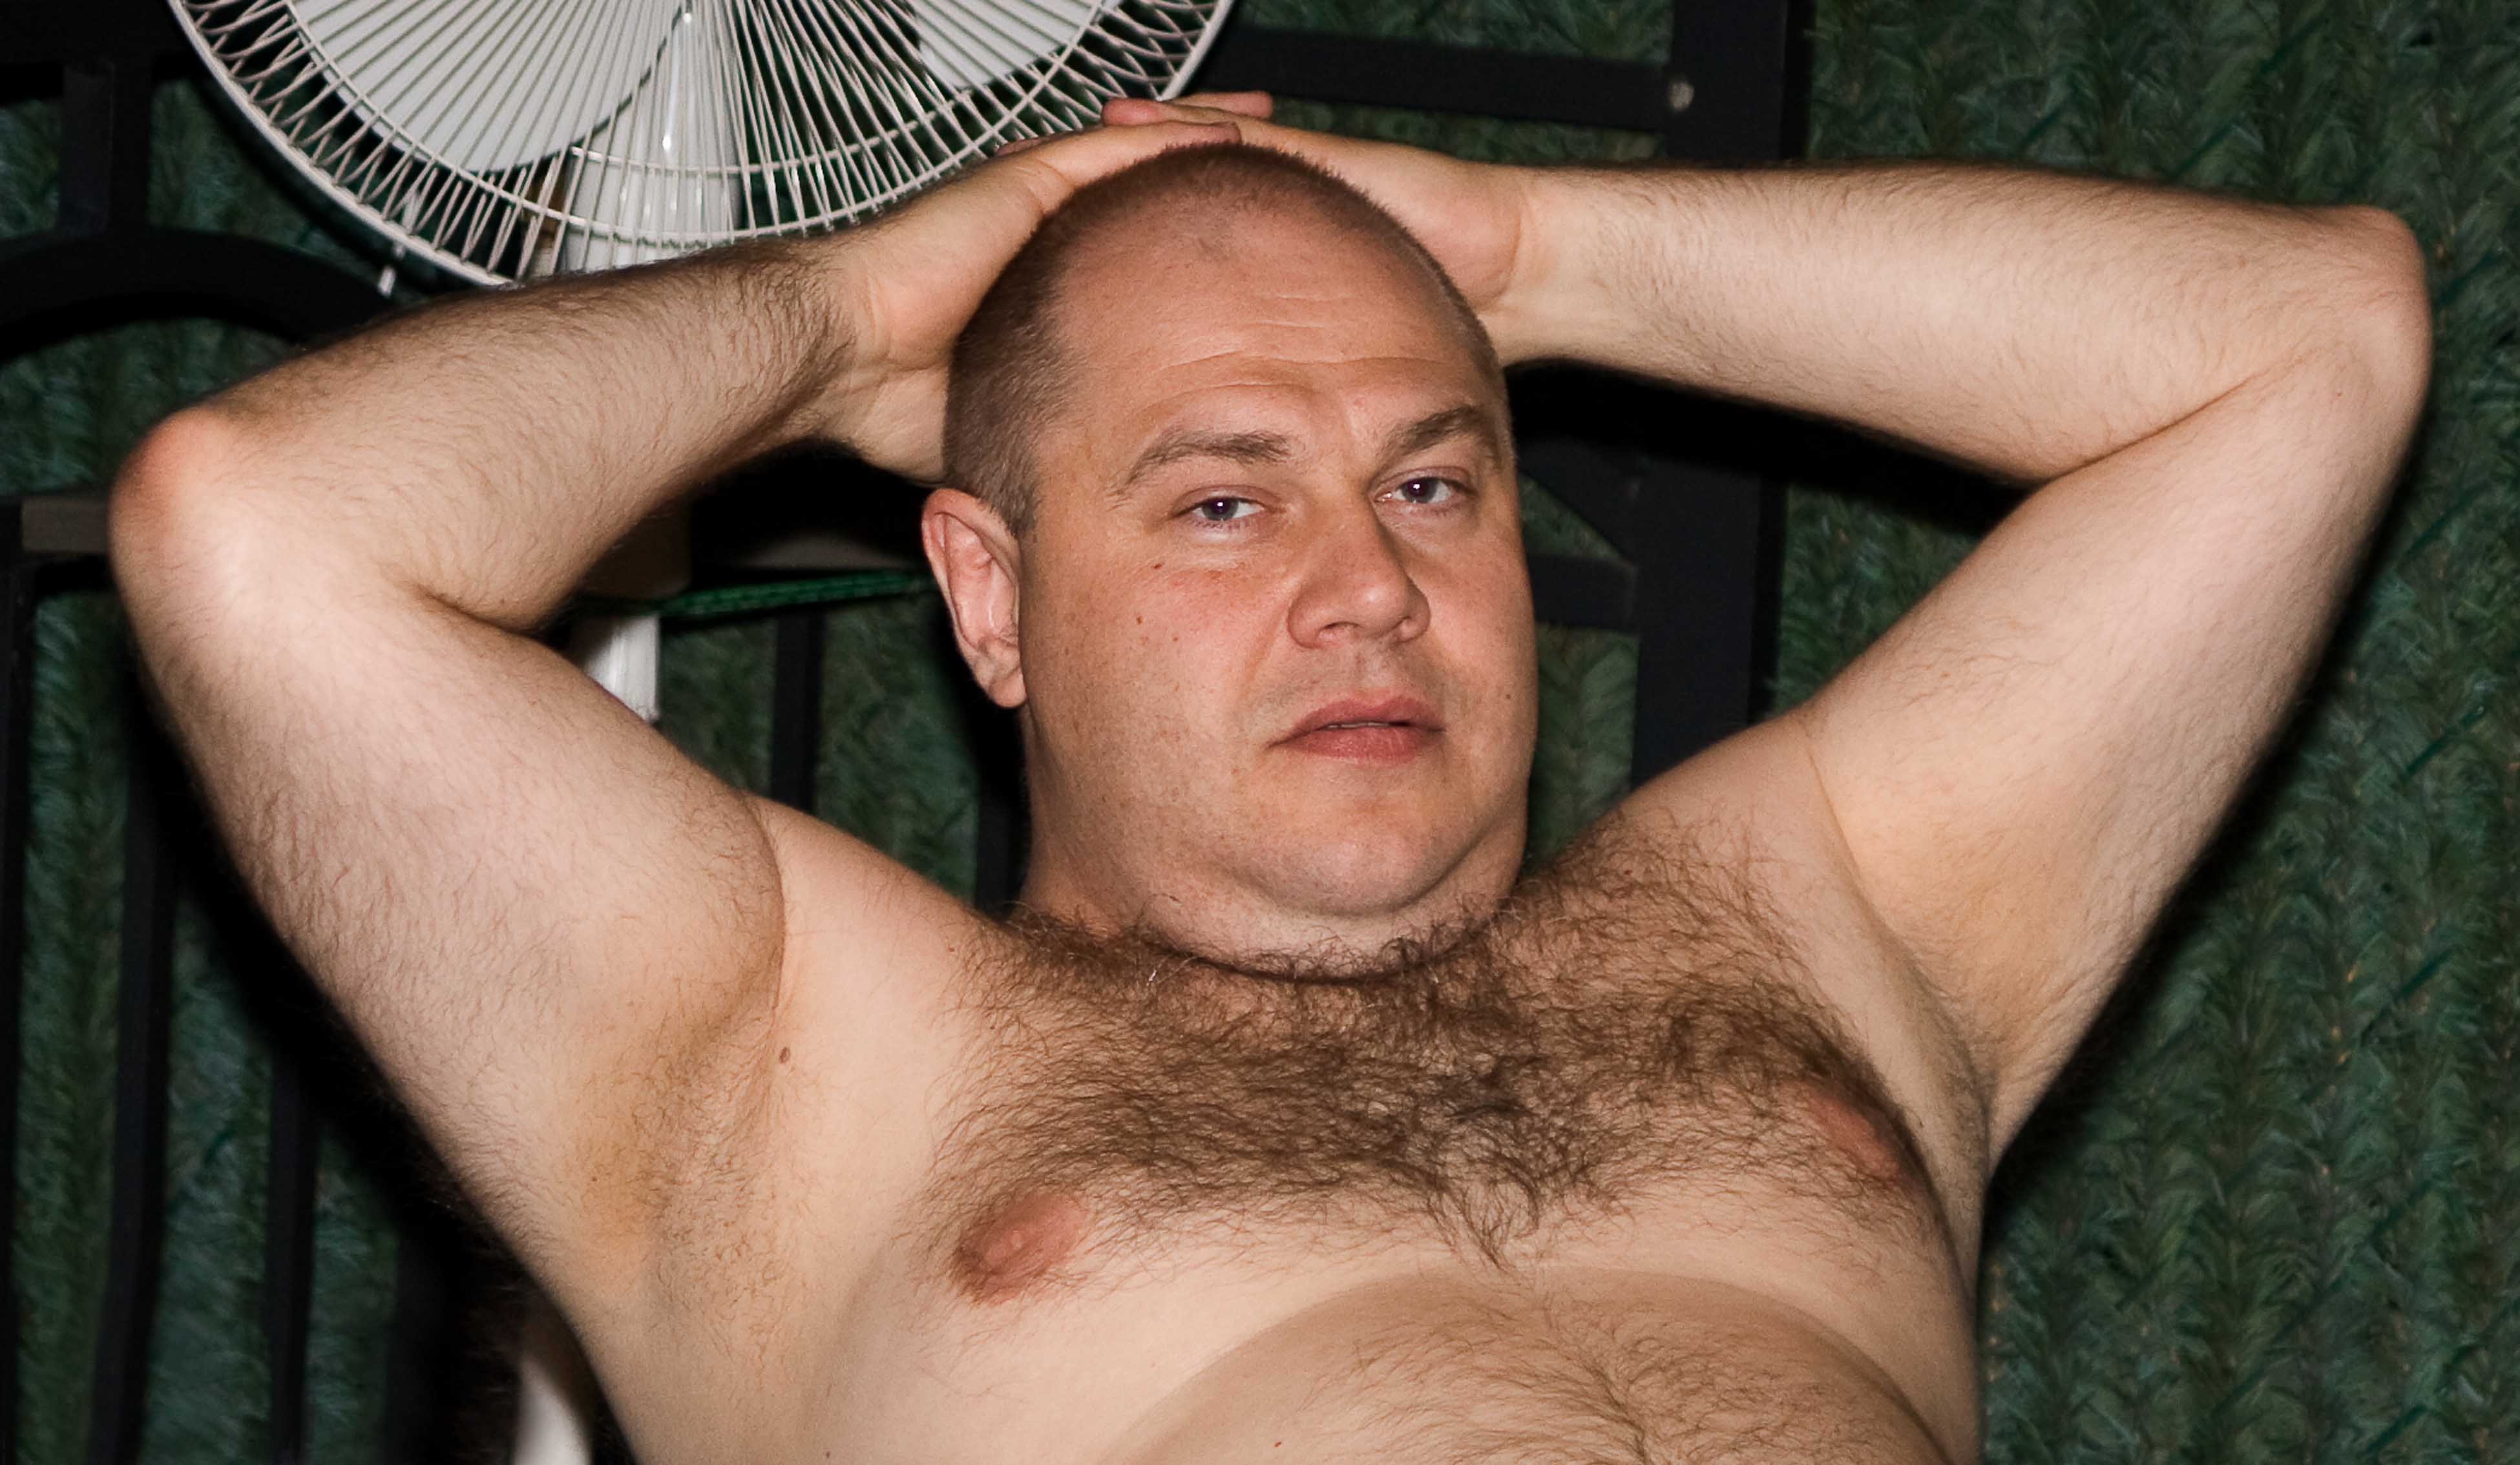 image Armpit hair russian boy and white